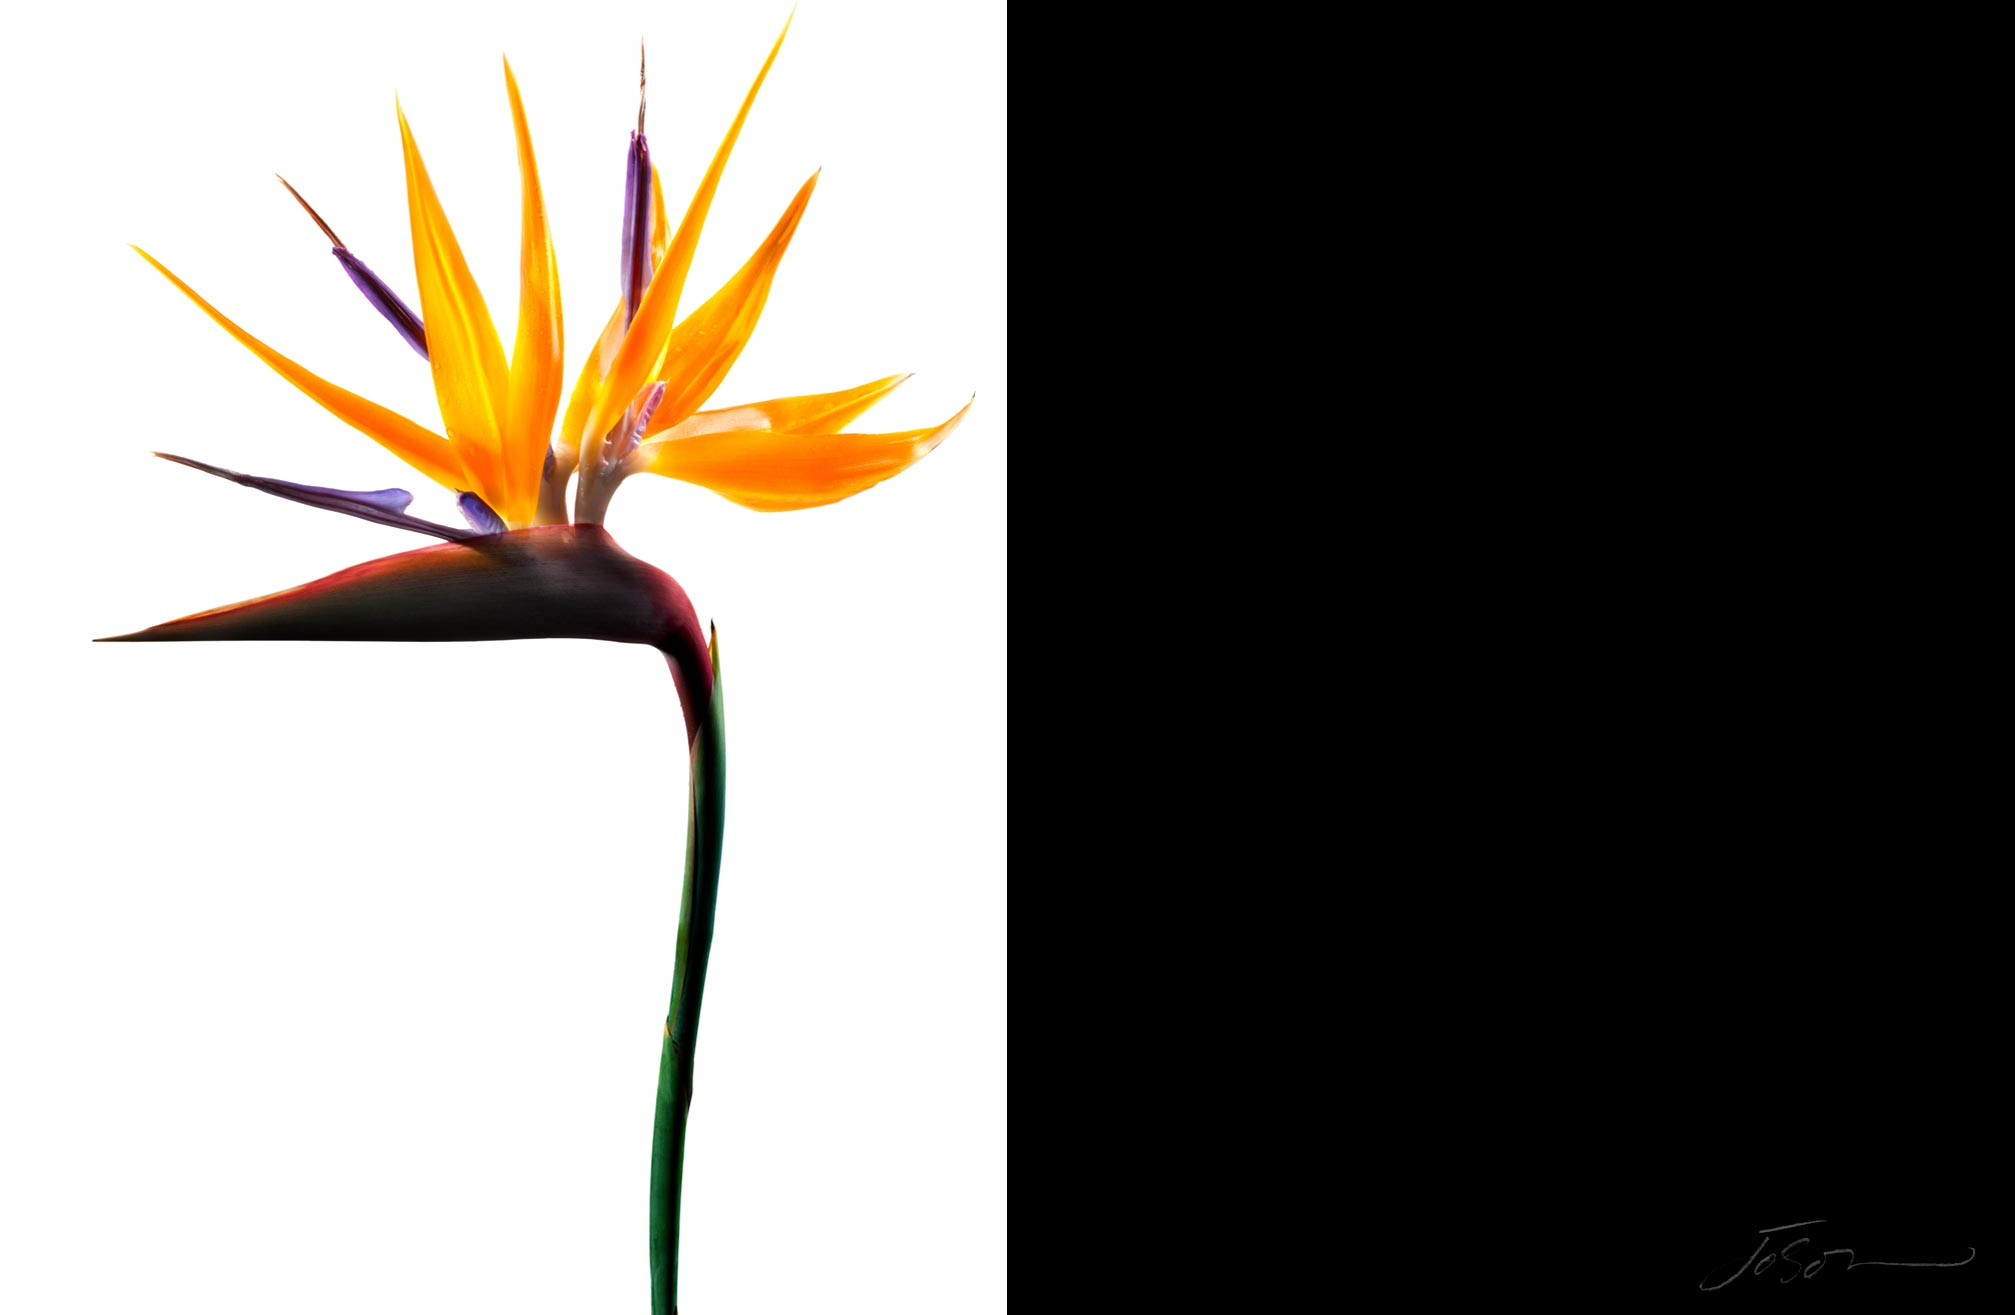 Bird of Paradise --Strelitzia reginae